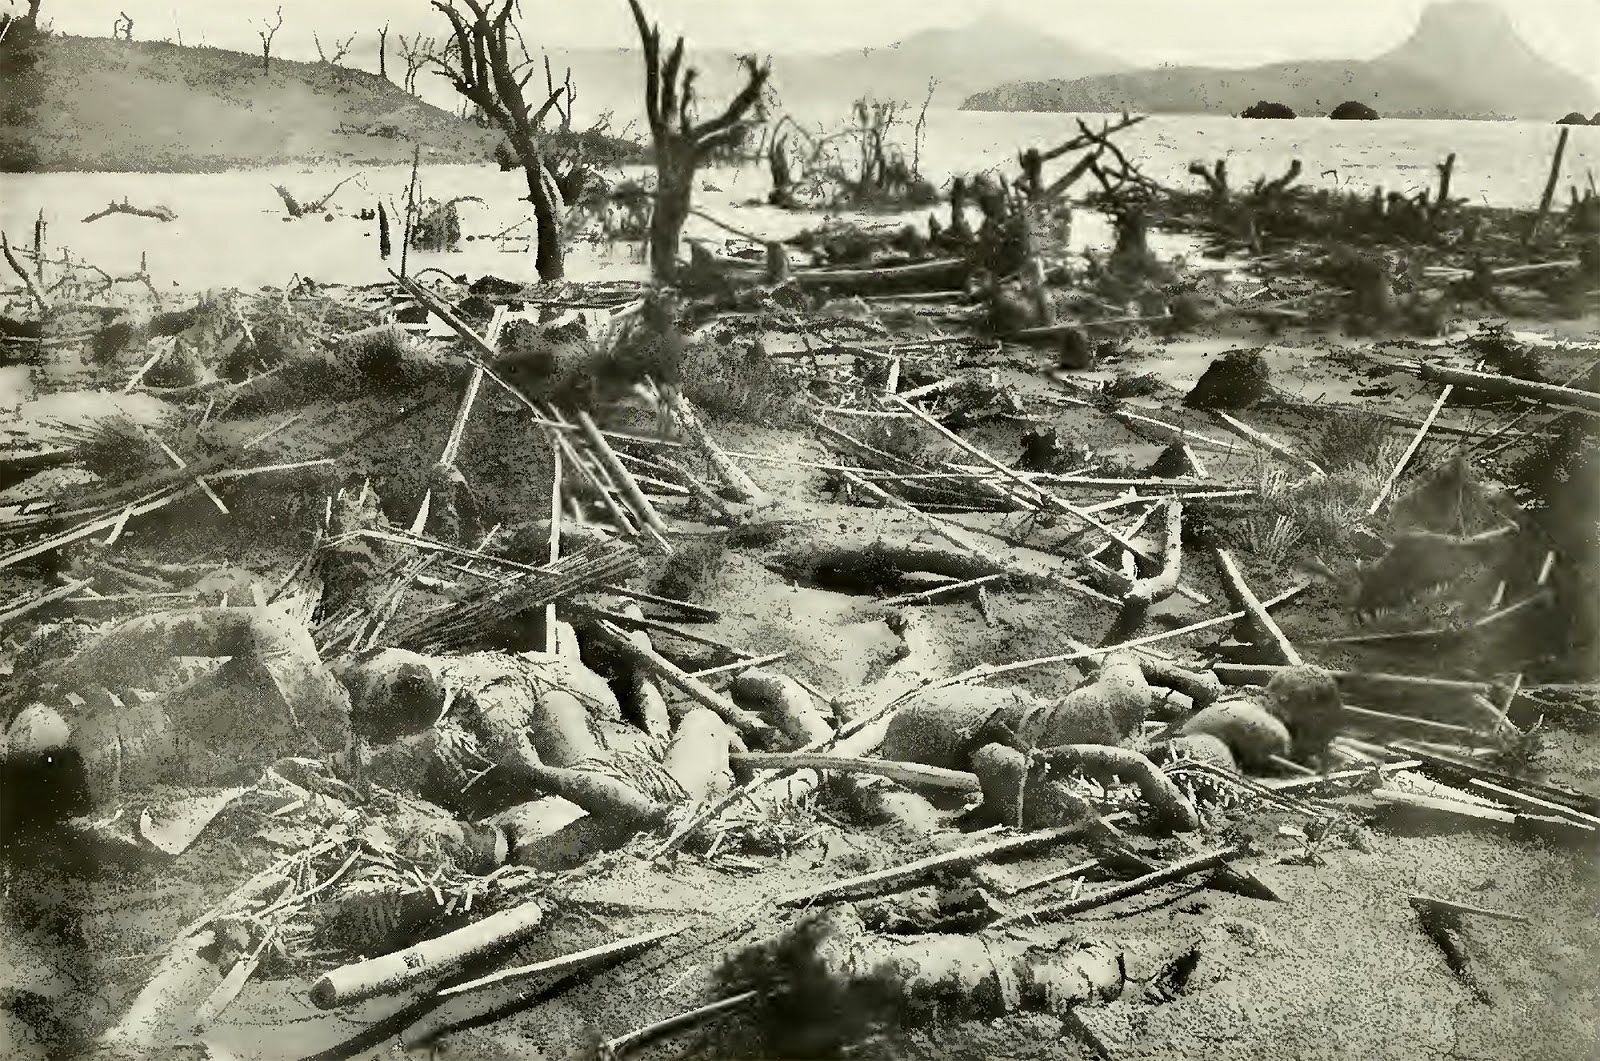 Taal - fatal eruption of 30.01.1911 - Gruesome photo from National Geographic / April 1912